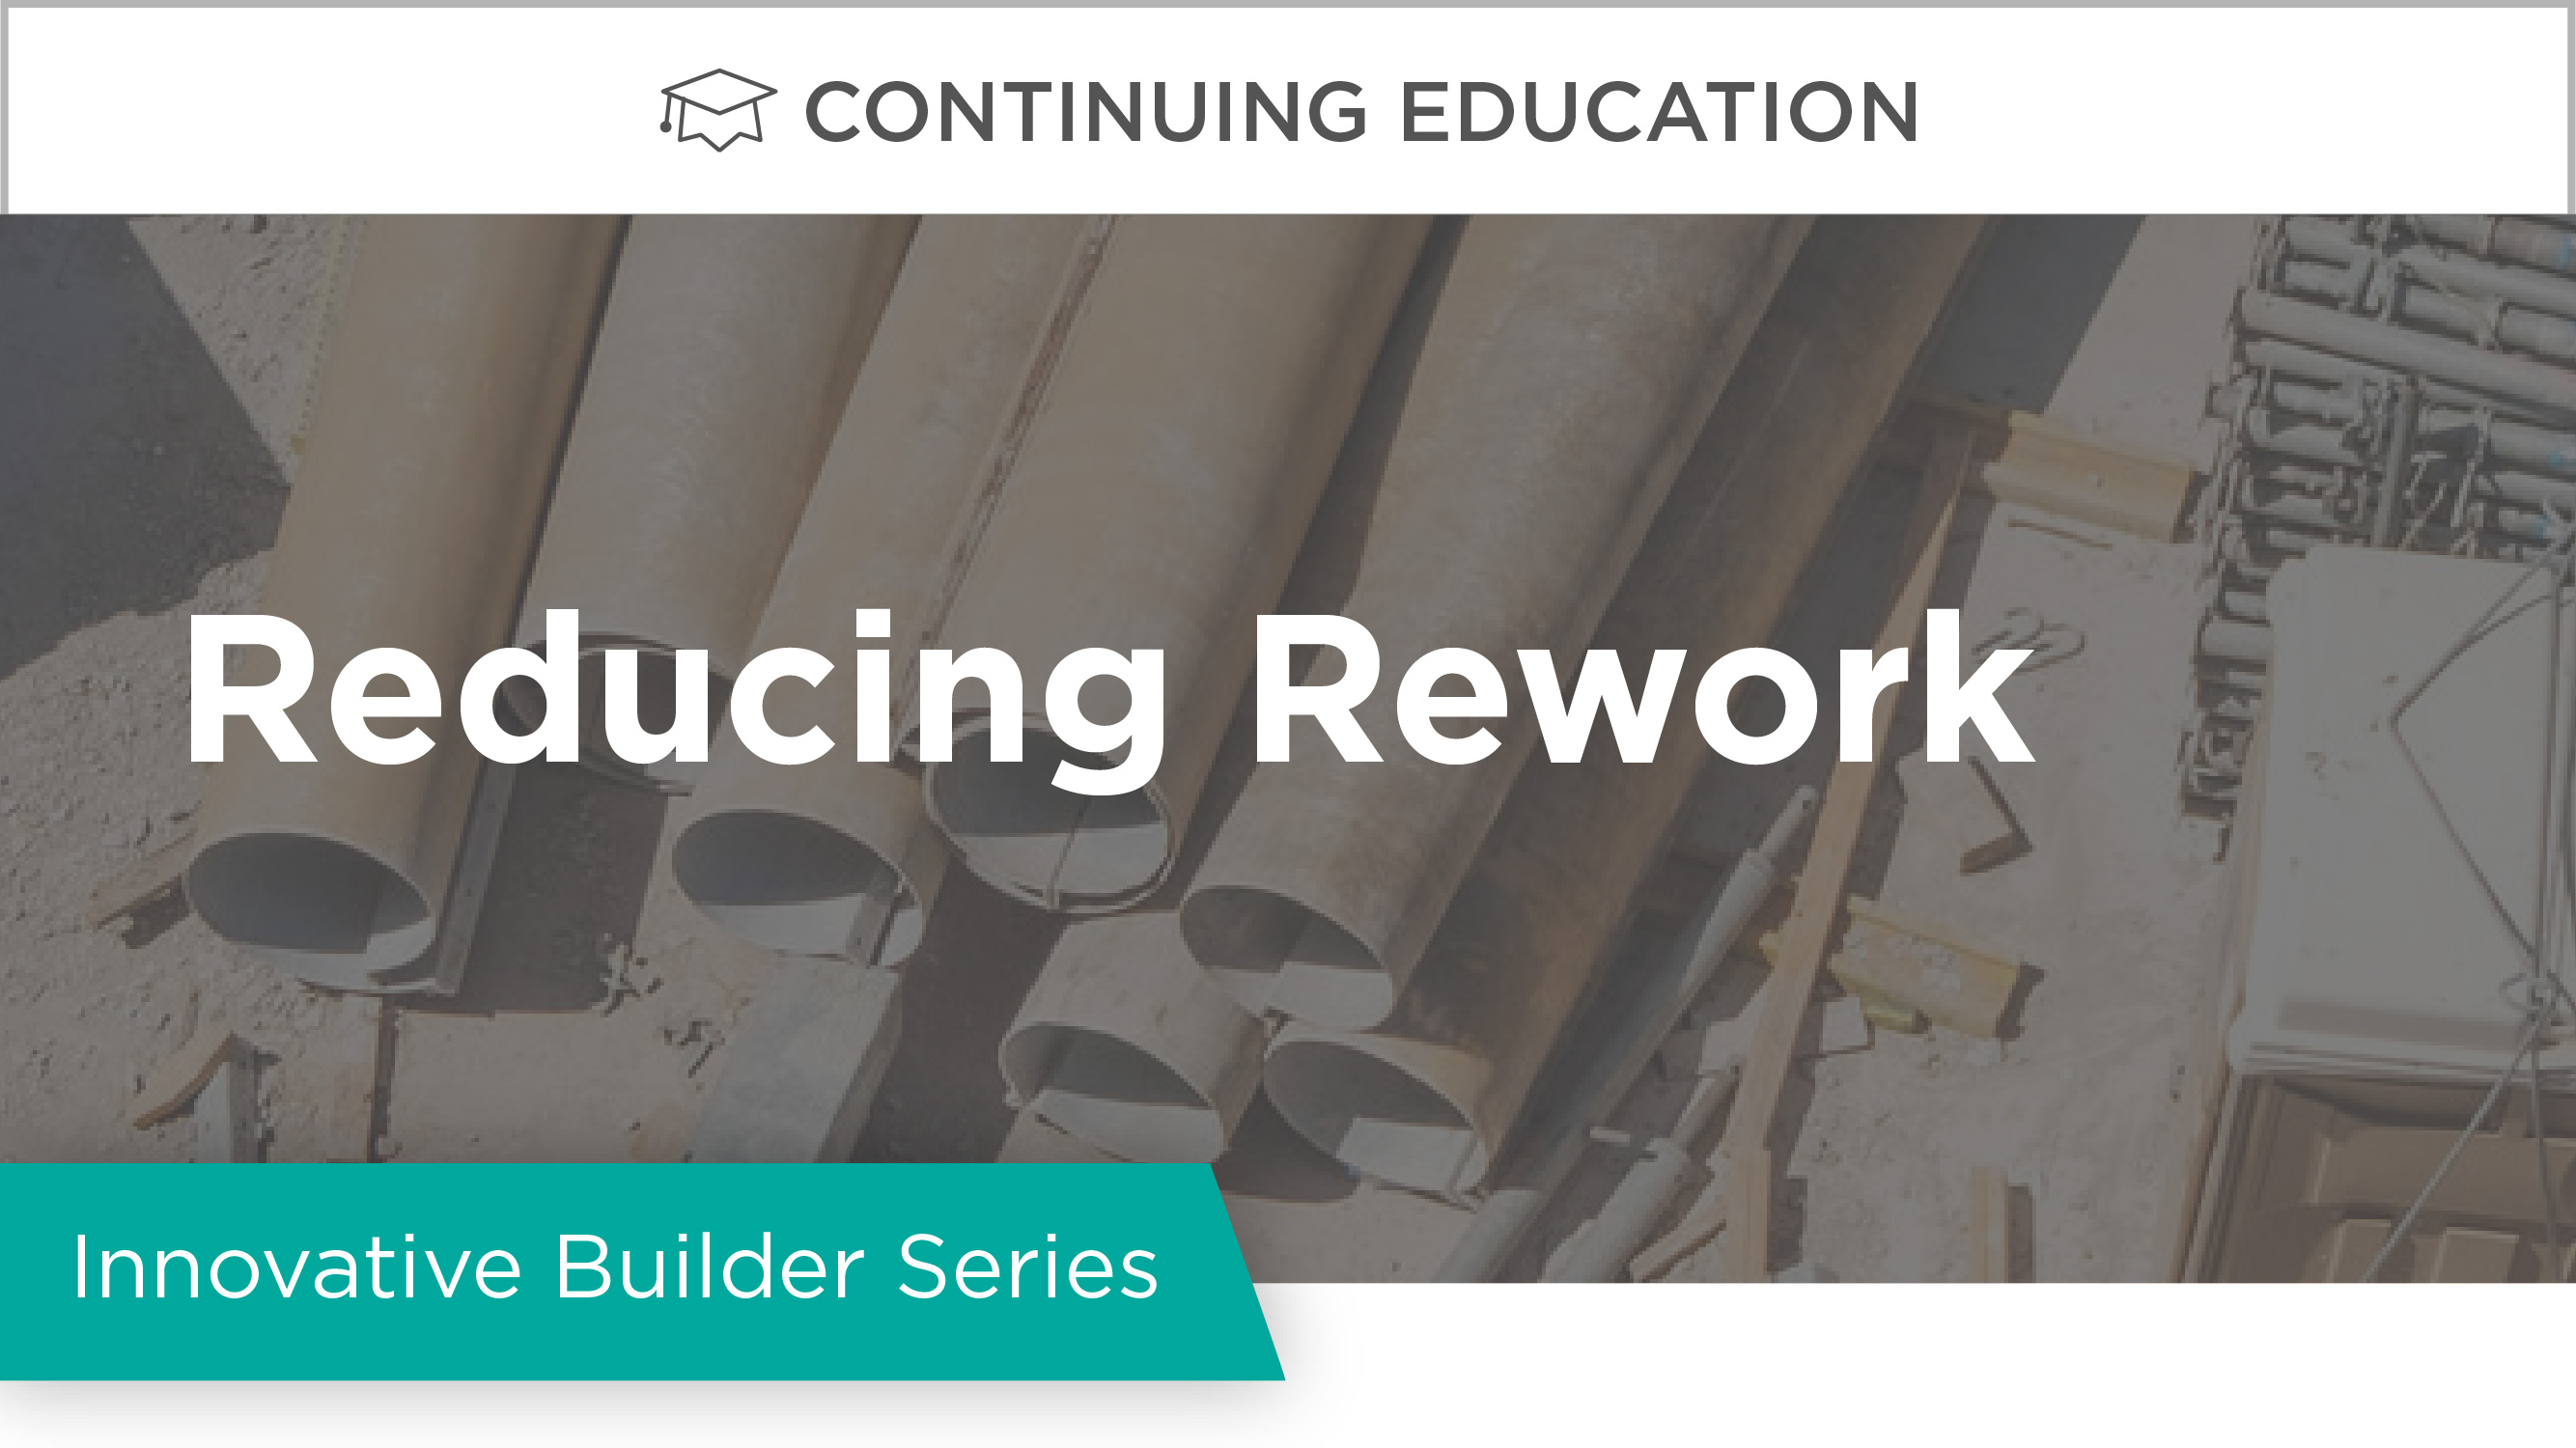 Innovative Builder Series: Reducing Rework